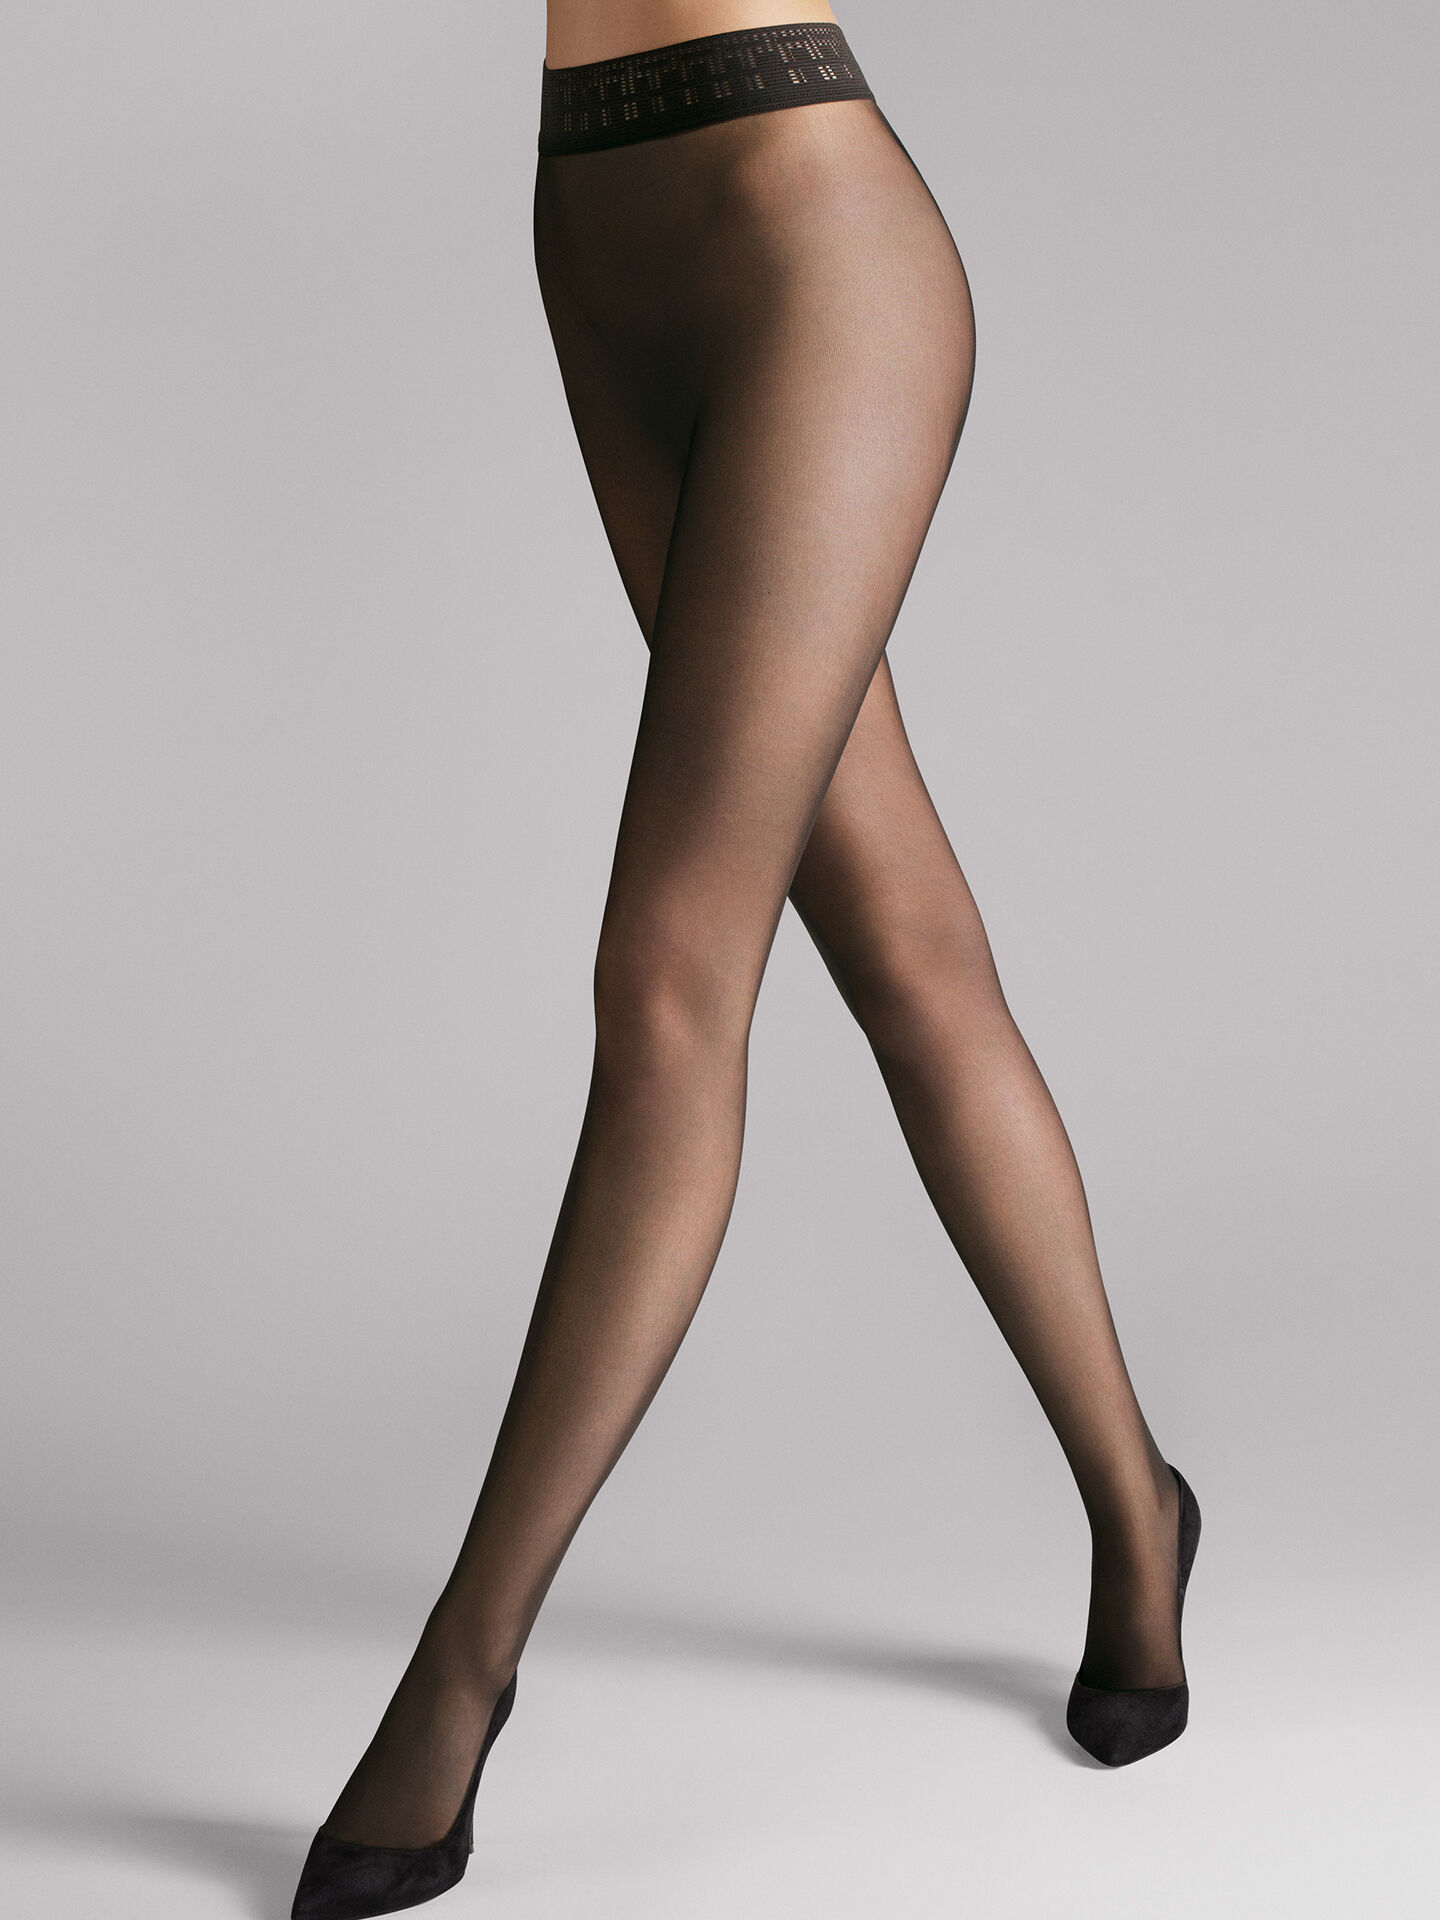 also fatal tights wolford rh wolfordshop